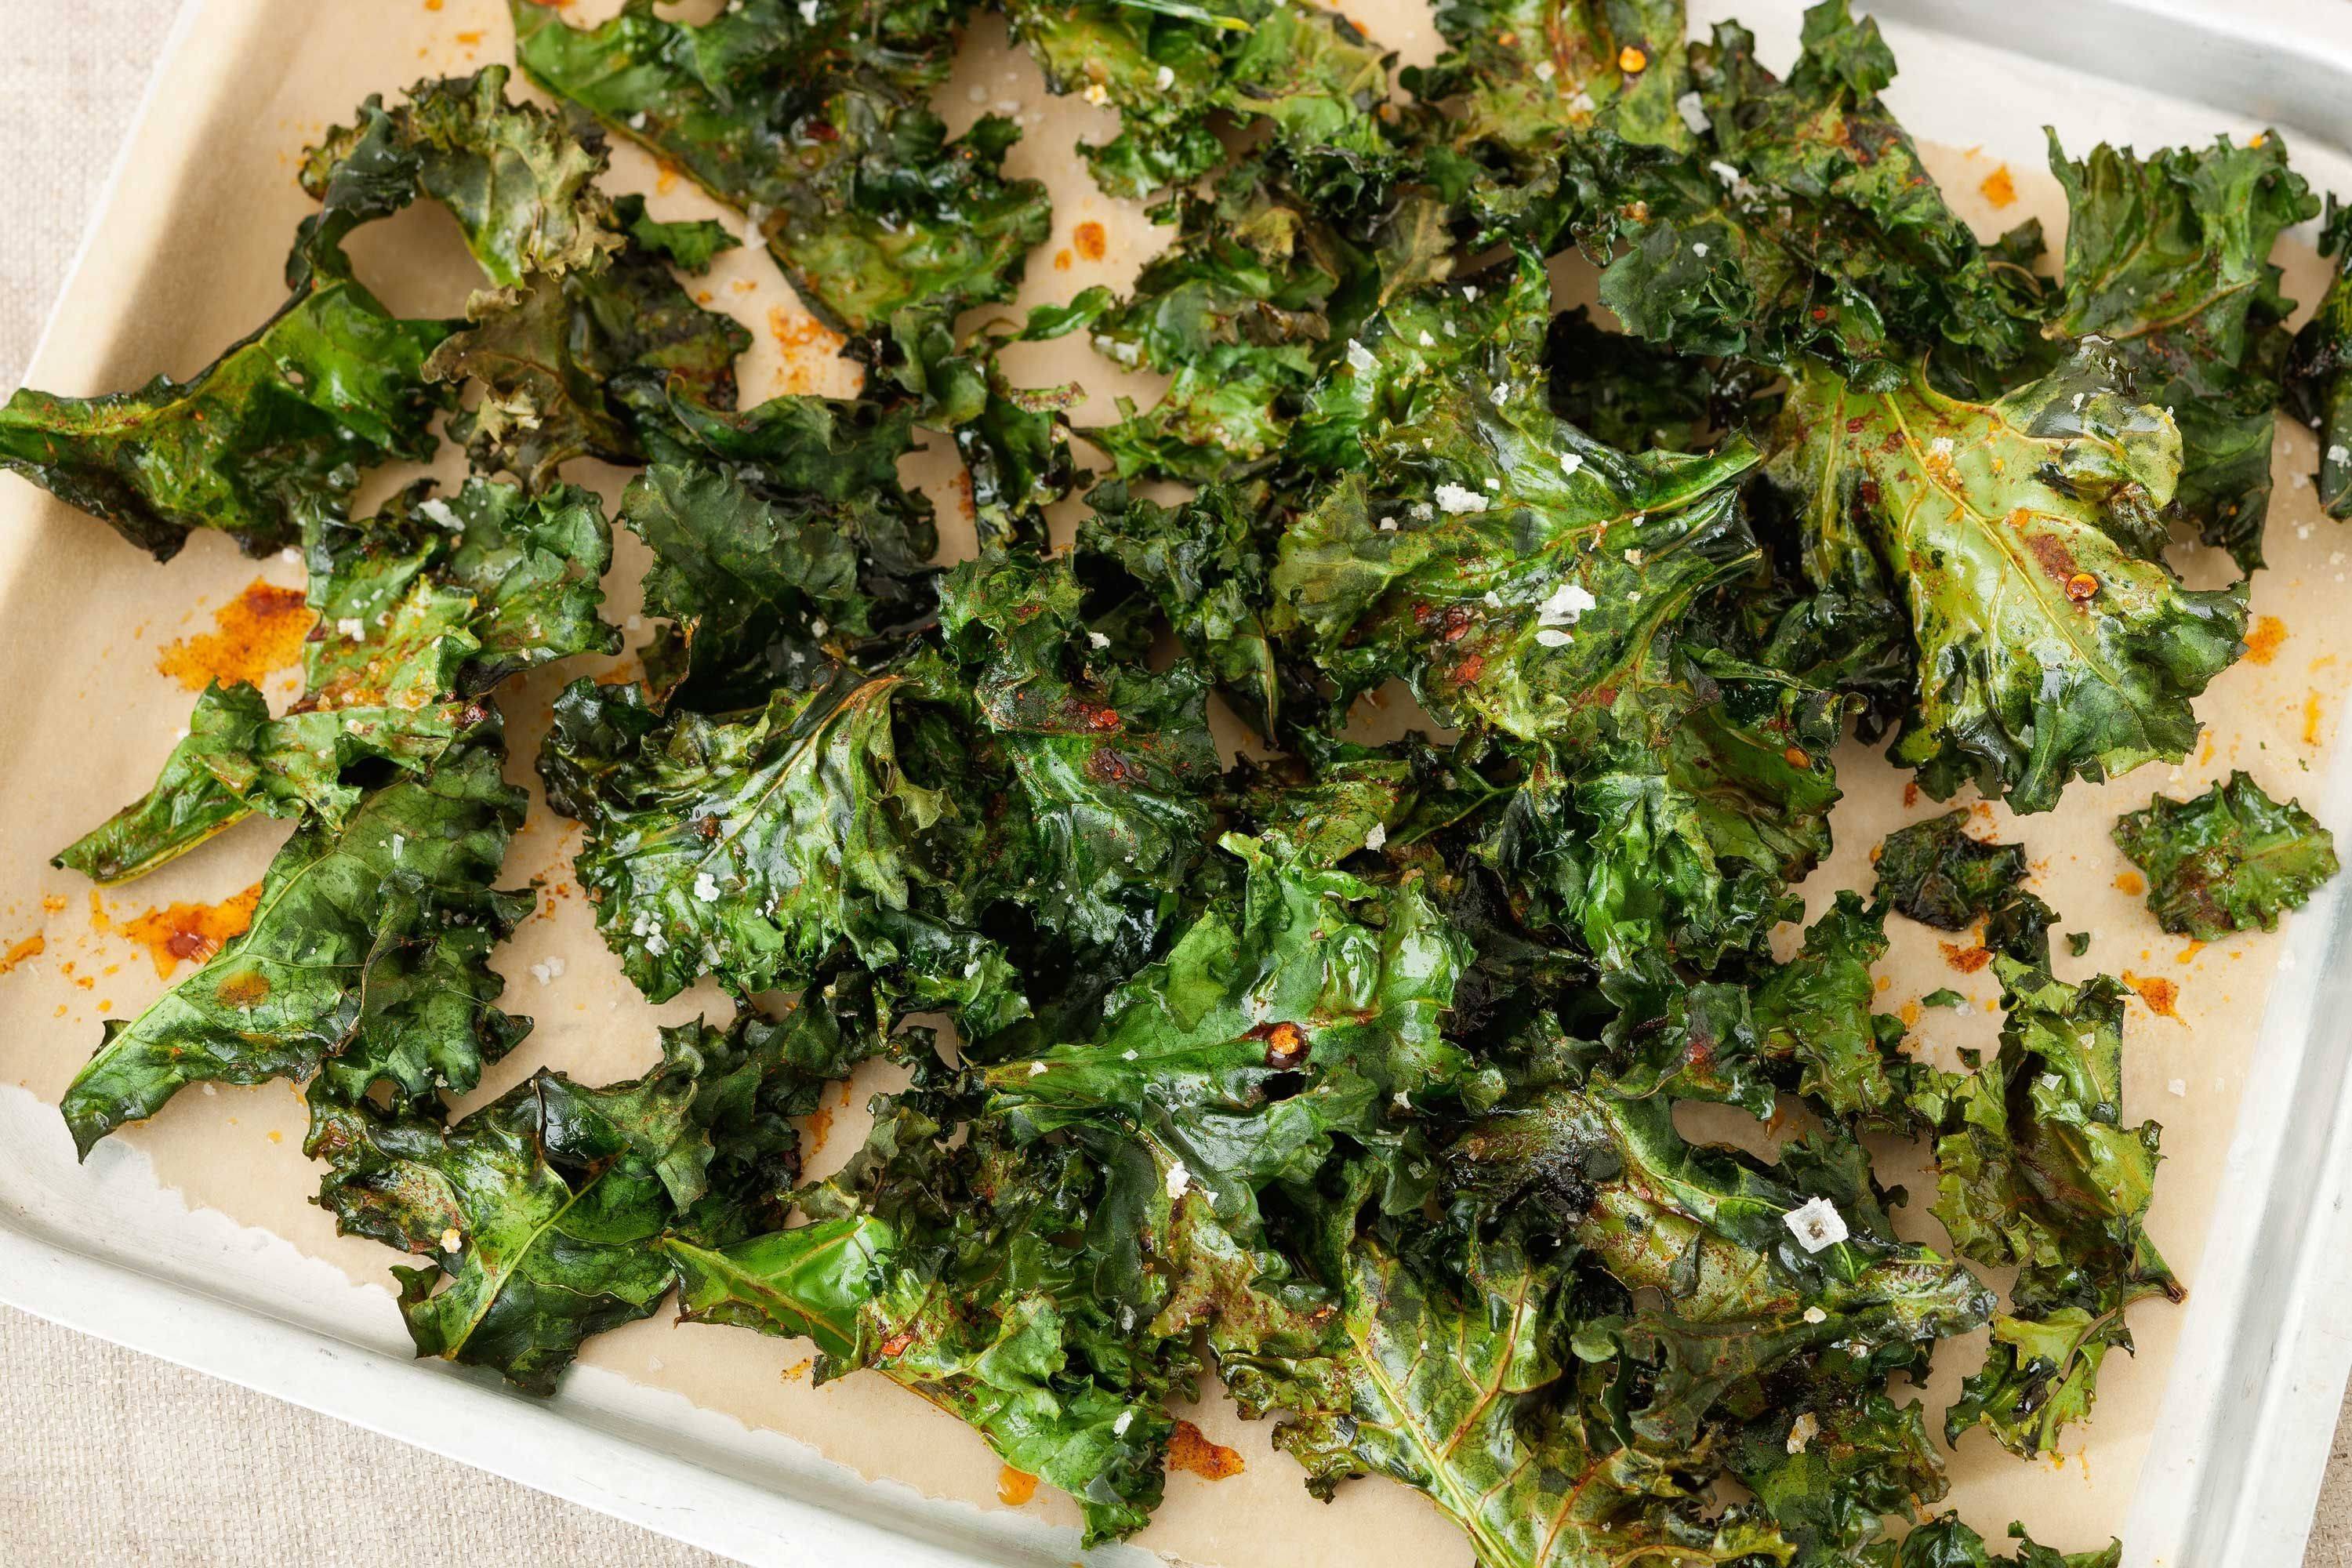 Healthy Recipes With Kale  are kale chips tasty